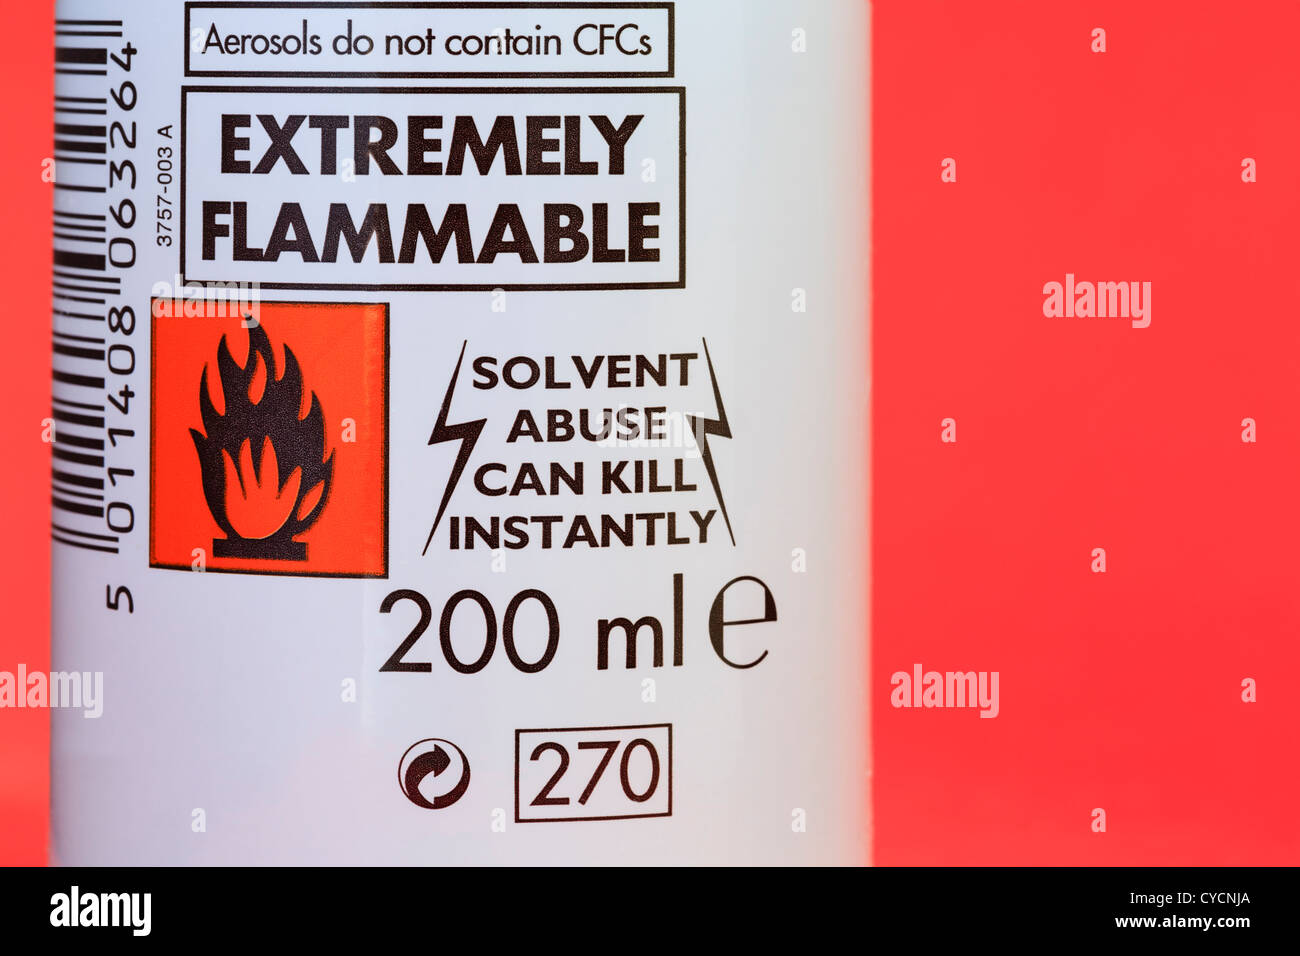 Extremely flammable symbol and solvent abuse warning label on a extremely flammable symbol and solvent abuse warning label on a can of hair mousse buycottarizona